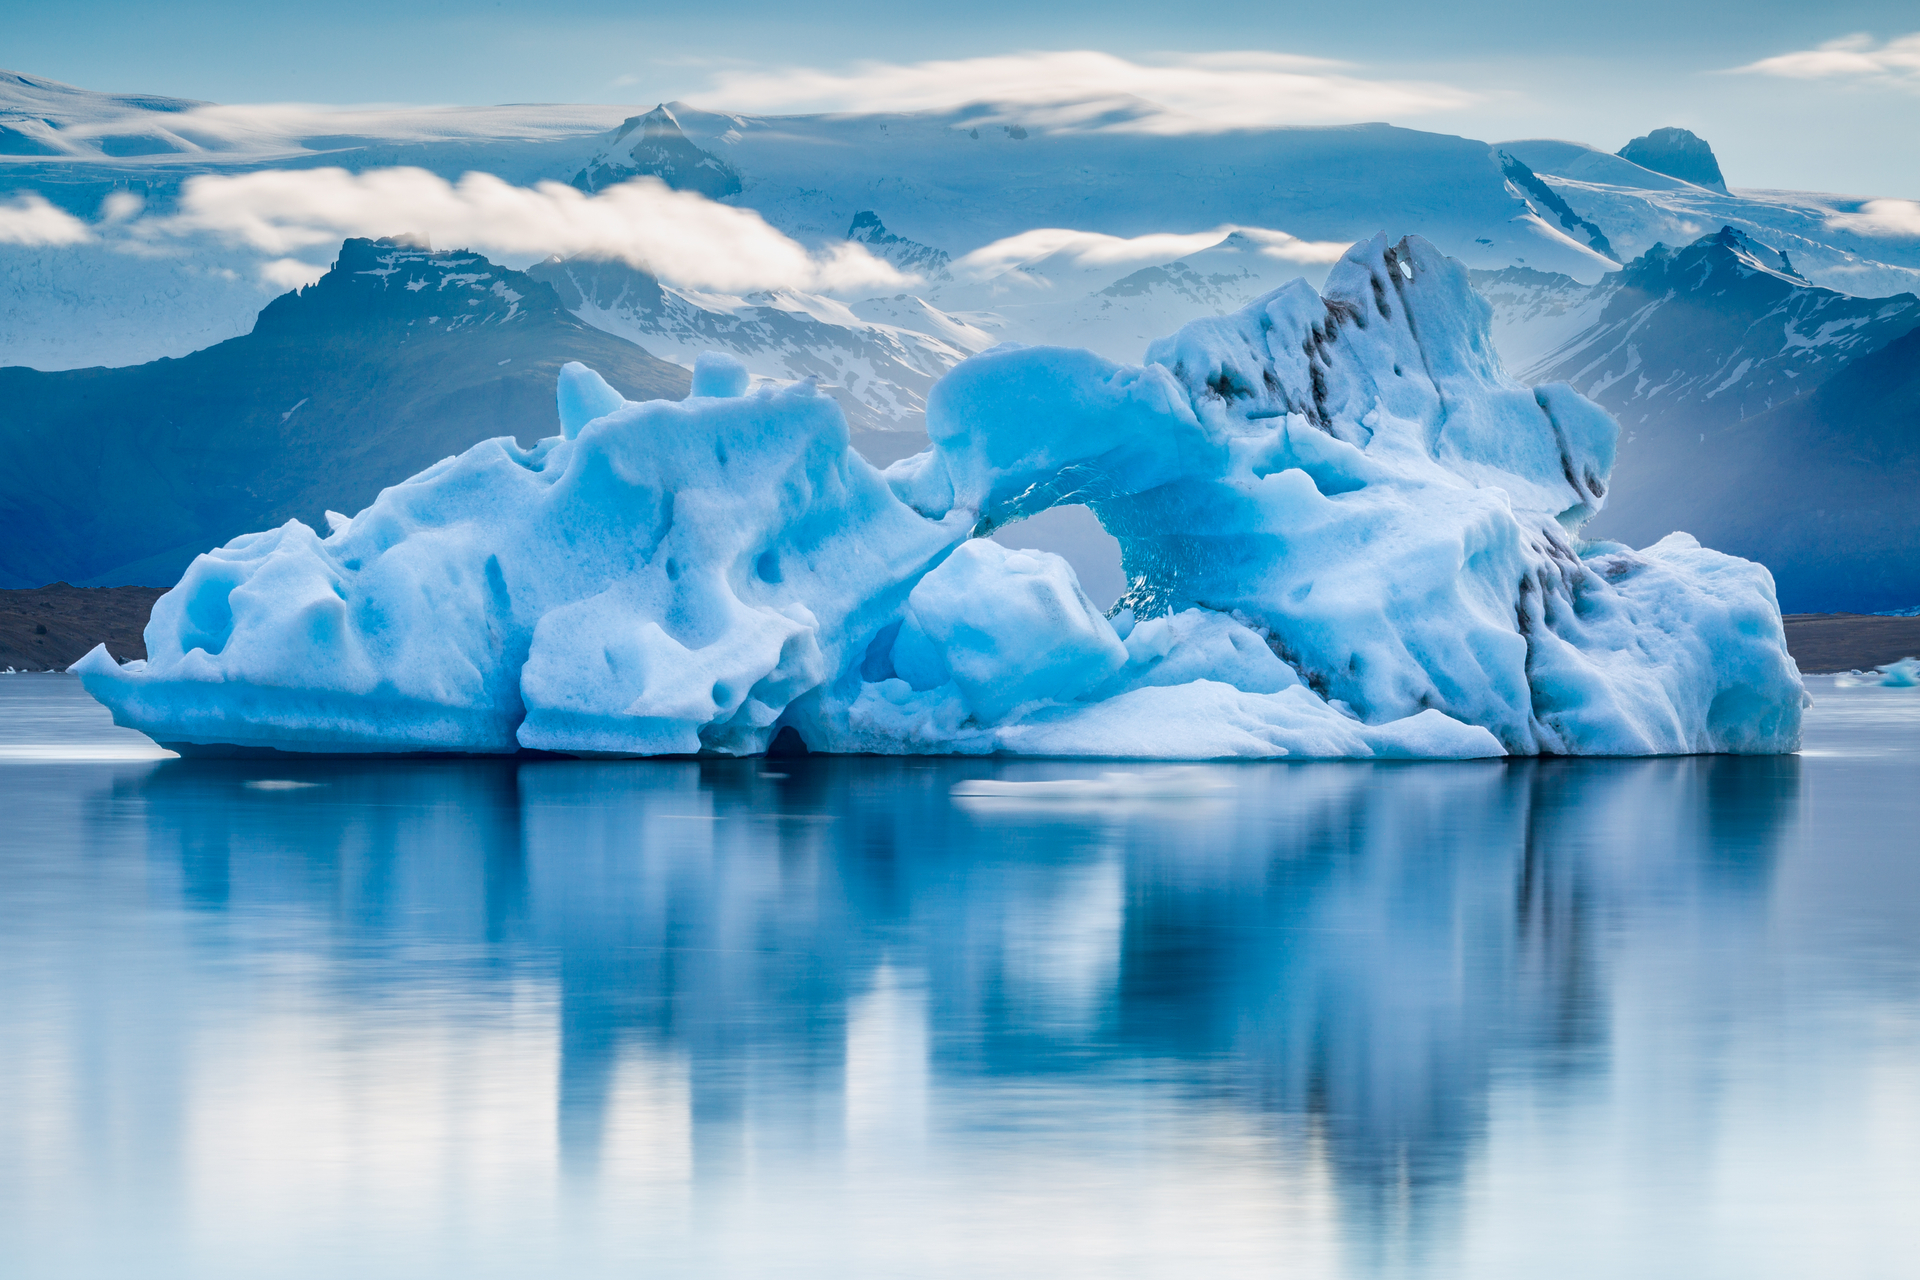 Artic Iceberg in water